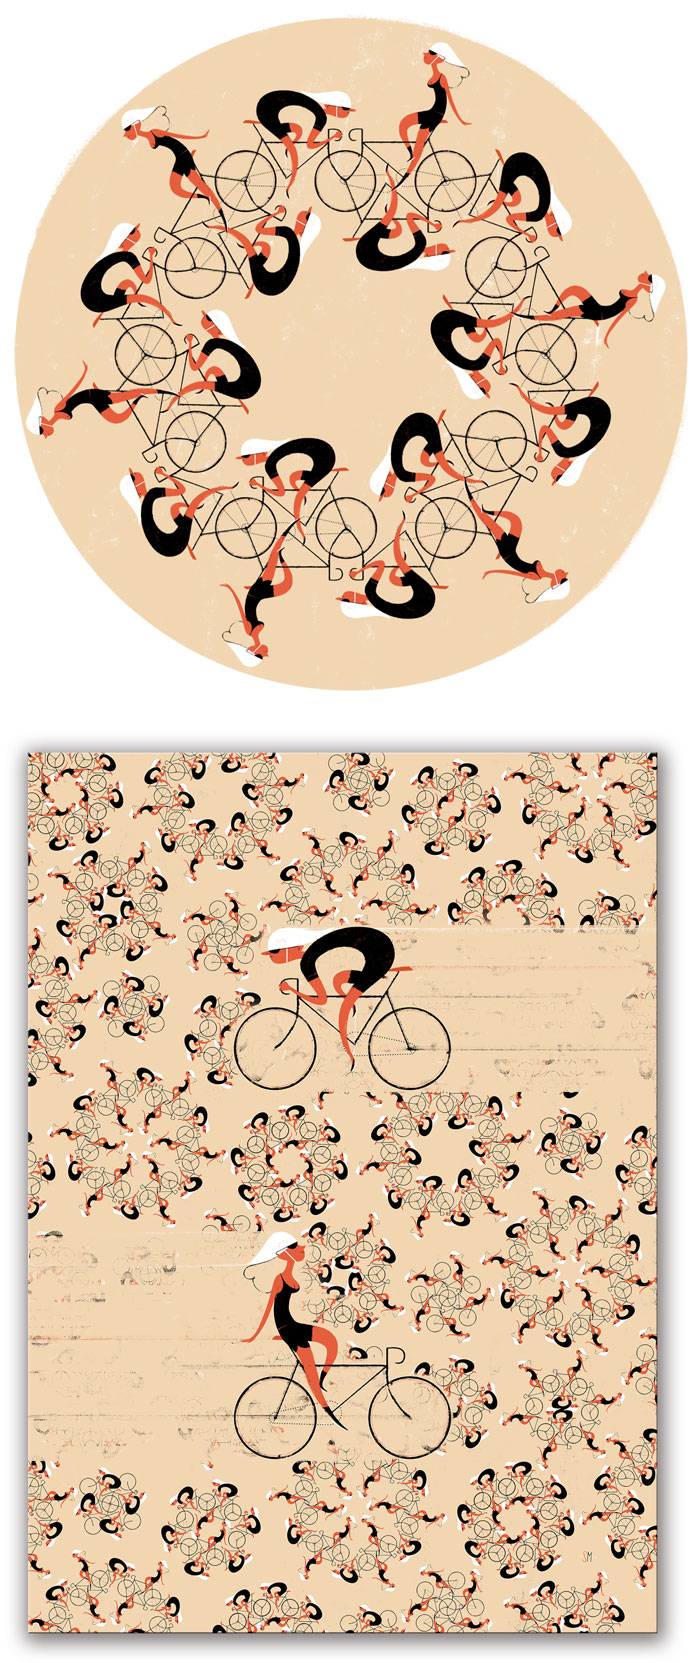 Simone Massoni / Pattern & poster design - Bicycle Film Festival